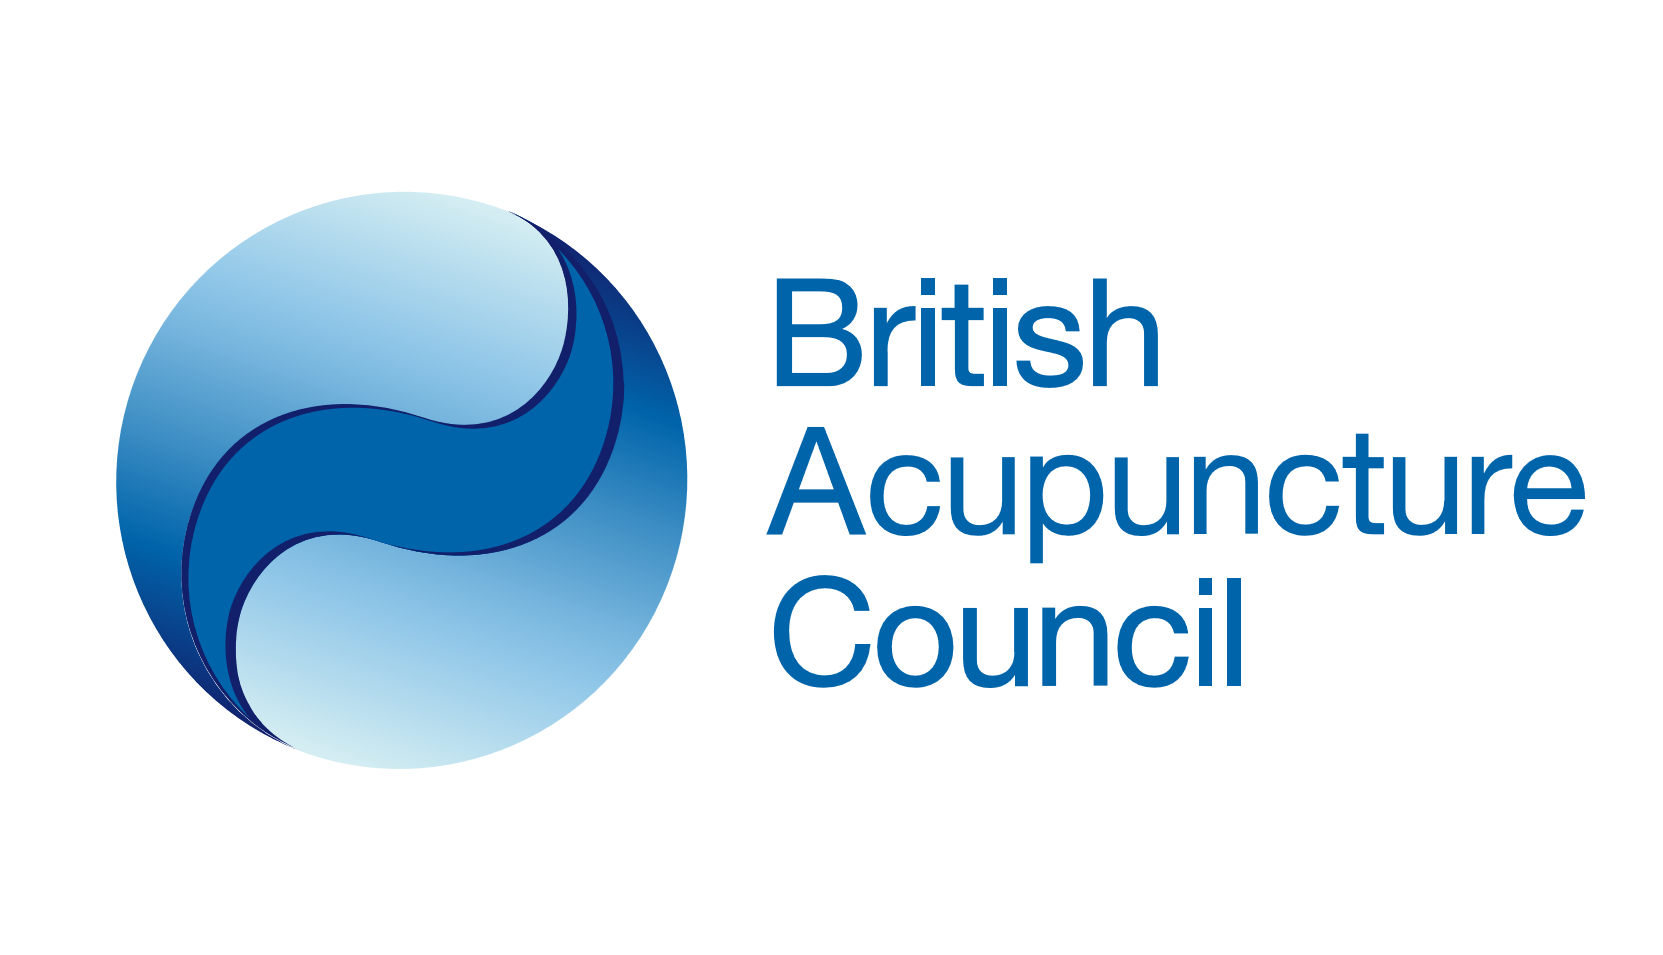 Accredited with the British Acupuncture Council